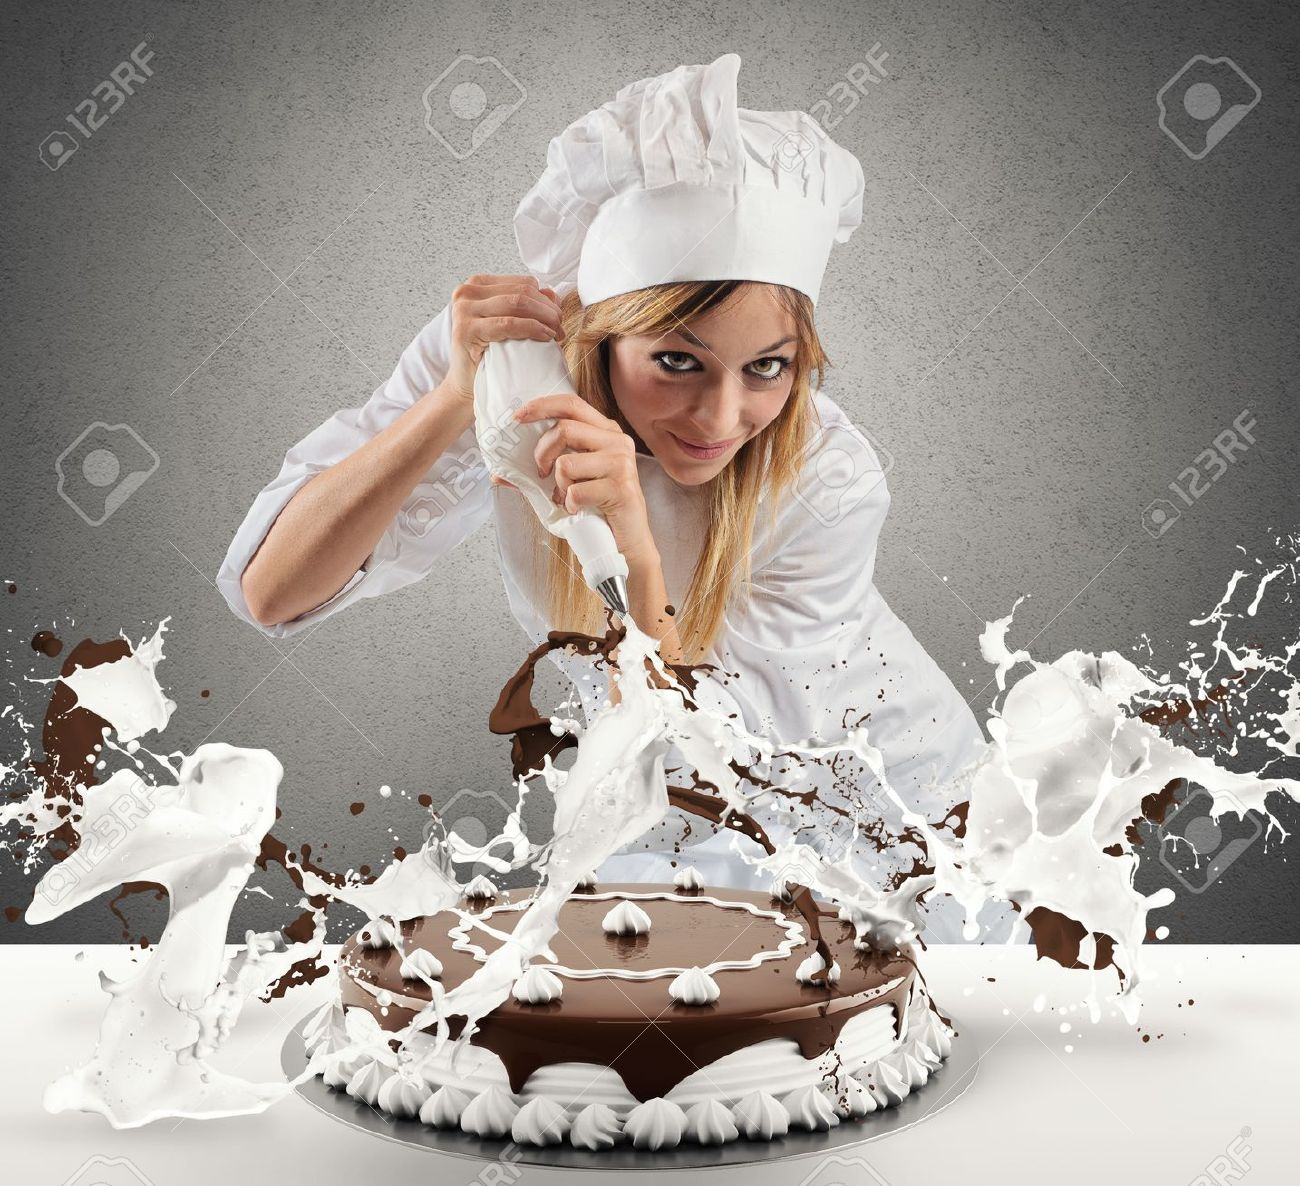 32493705-pastry-cook-prepares-a-cake-with-cream-and-chocolate-stock-photo